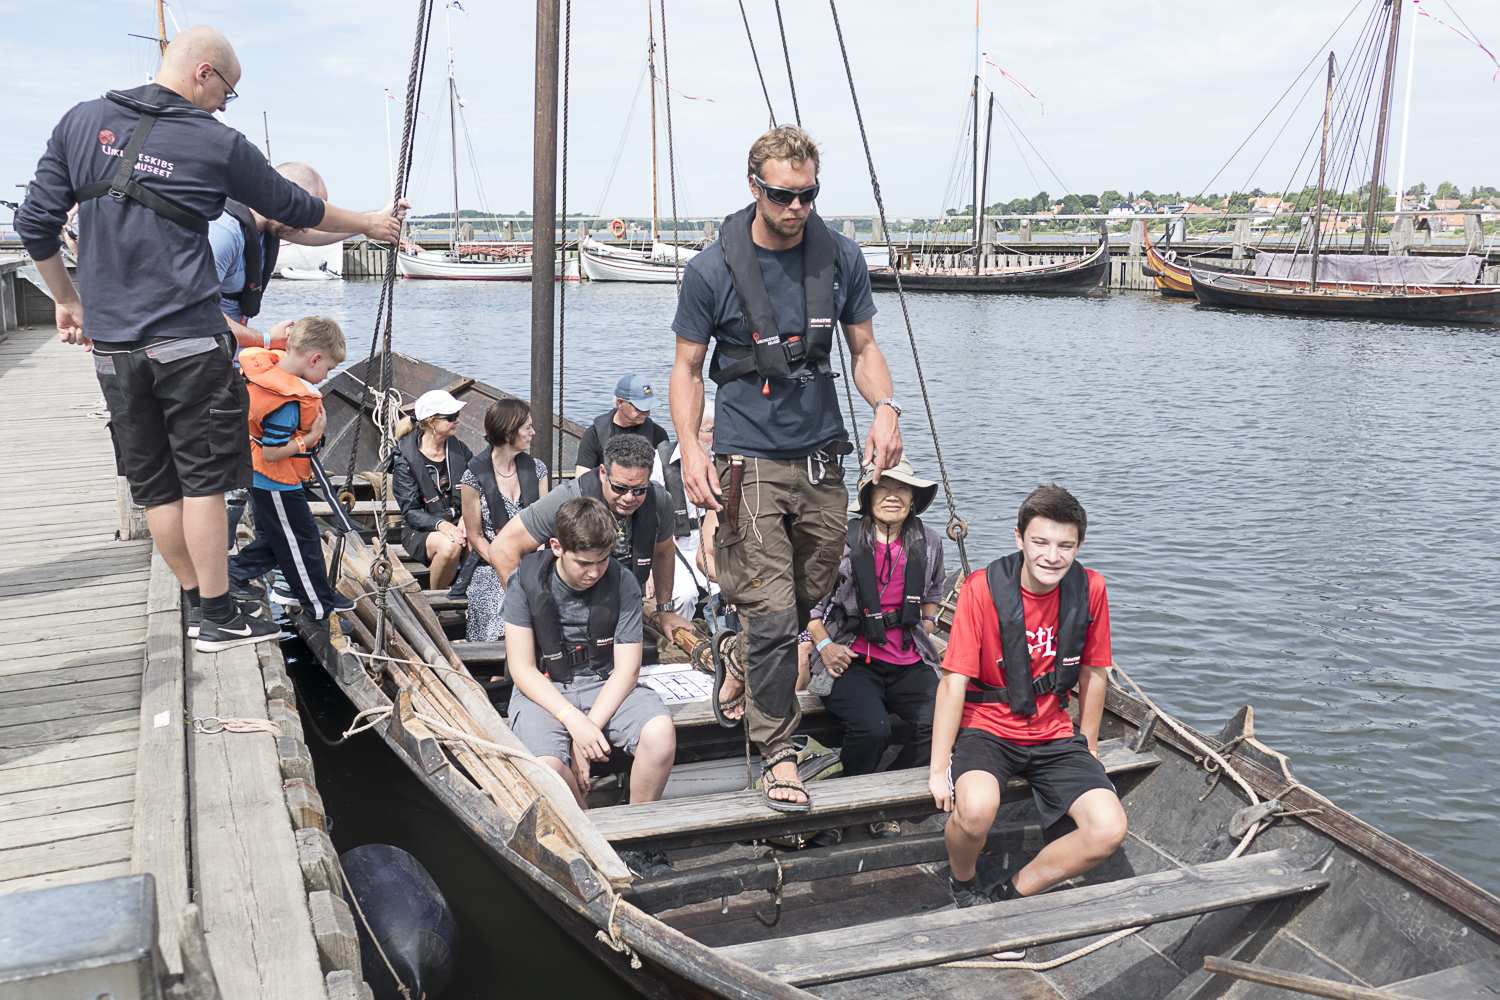 Getting ready to cast off for the rowing part of the tour on a replica Viking boat.